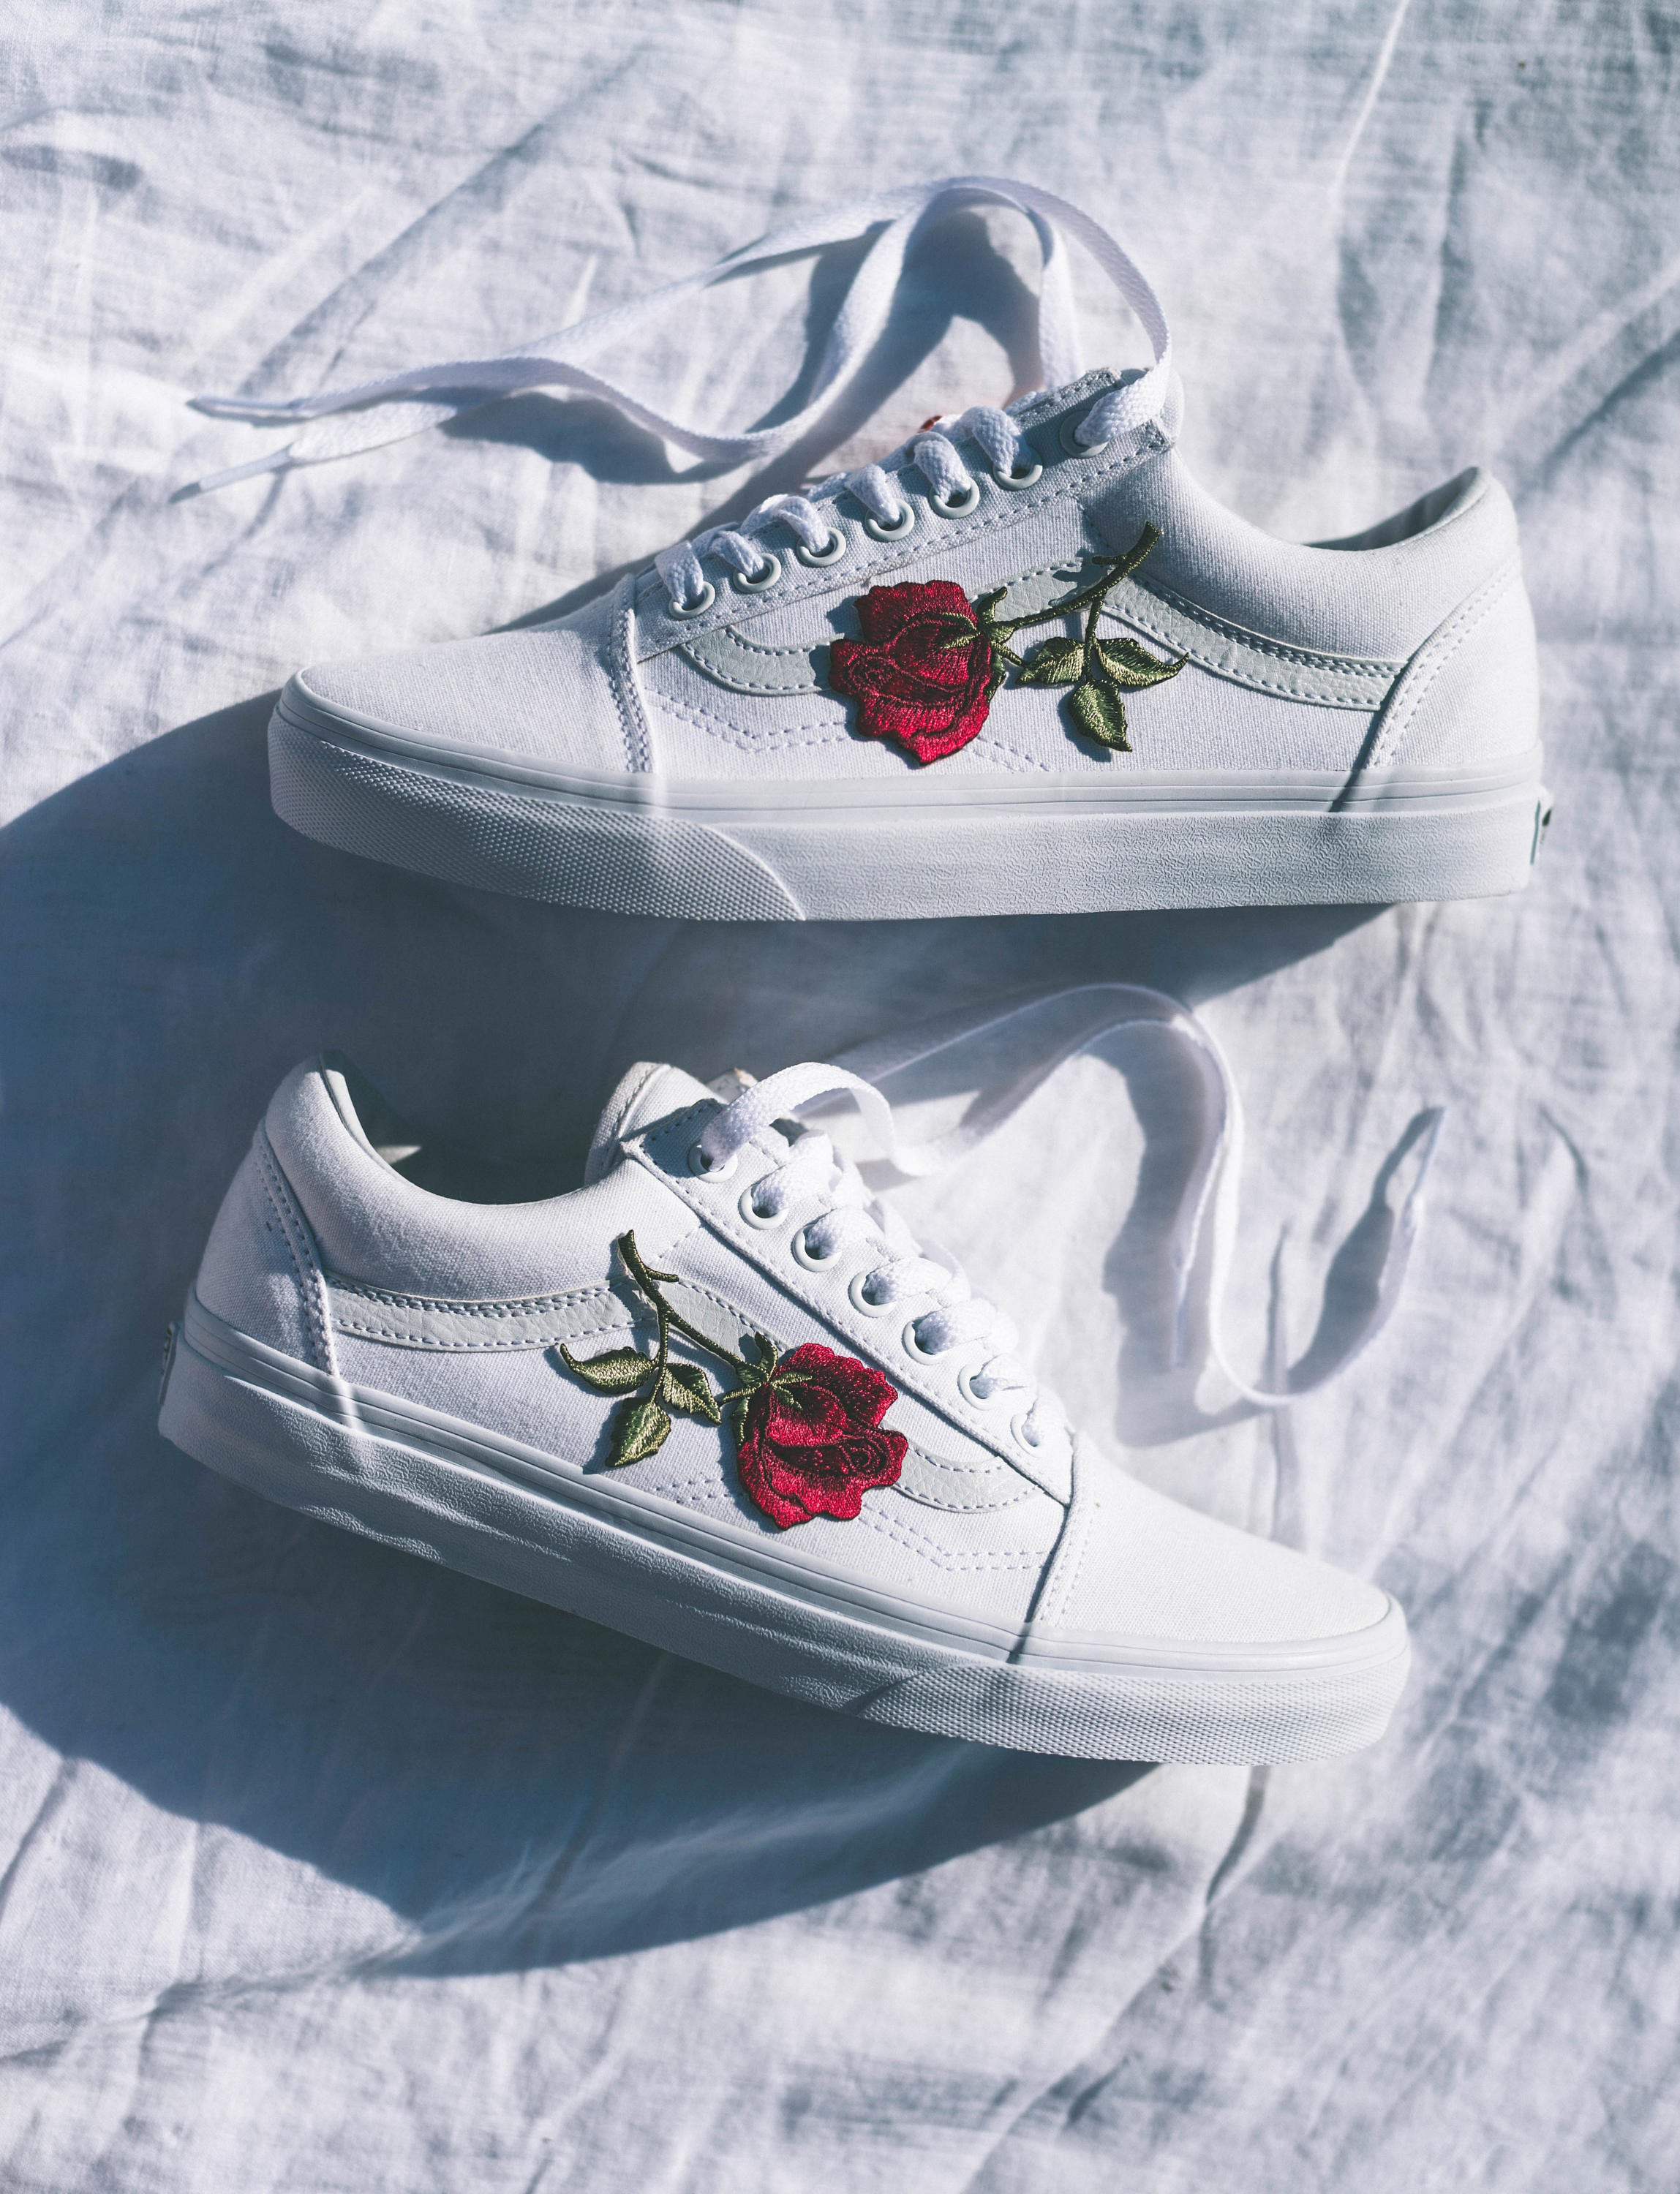 Vans Old Skool Custom White - Big Rose Patch - All Sizes - Unisex - Sneaker Shoes [Embroidery Sk8 Hi Nike Air Force Lv Roses Flowers]